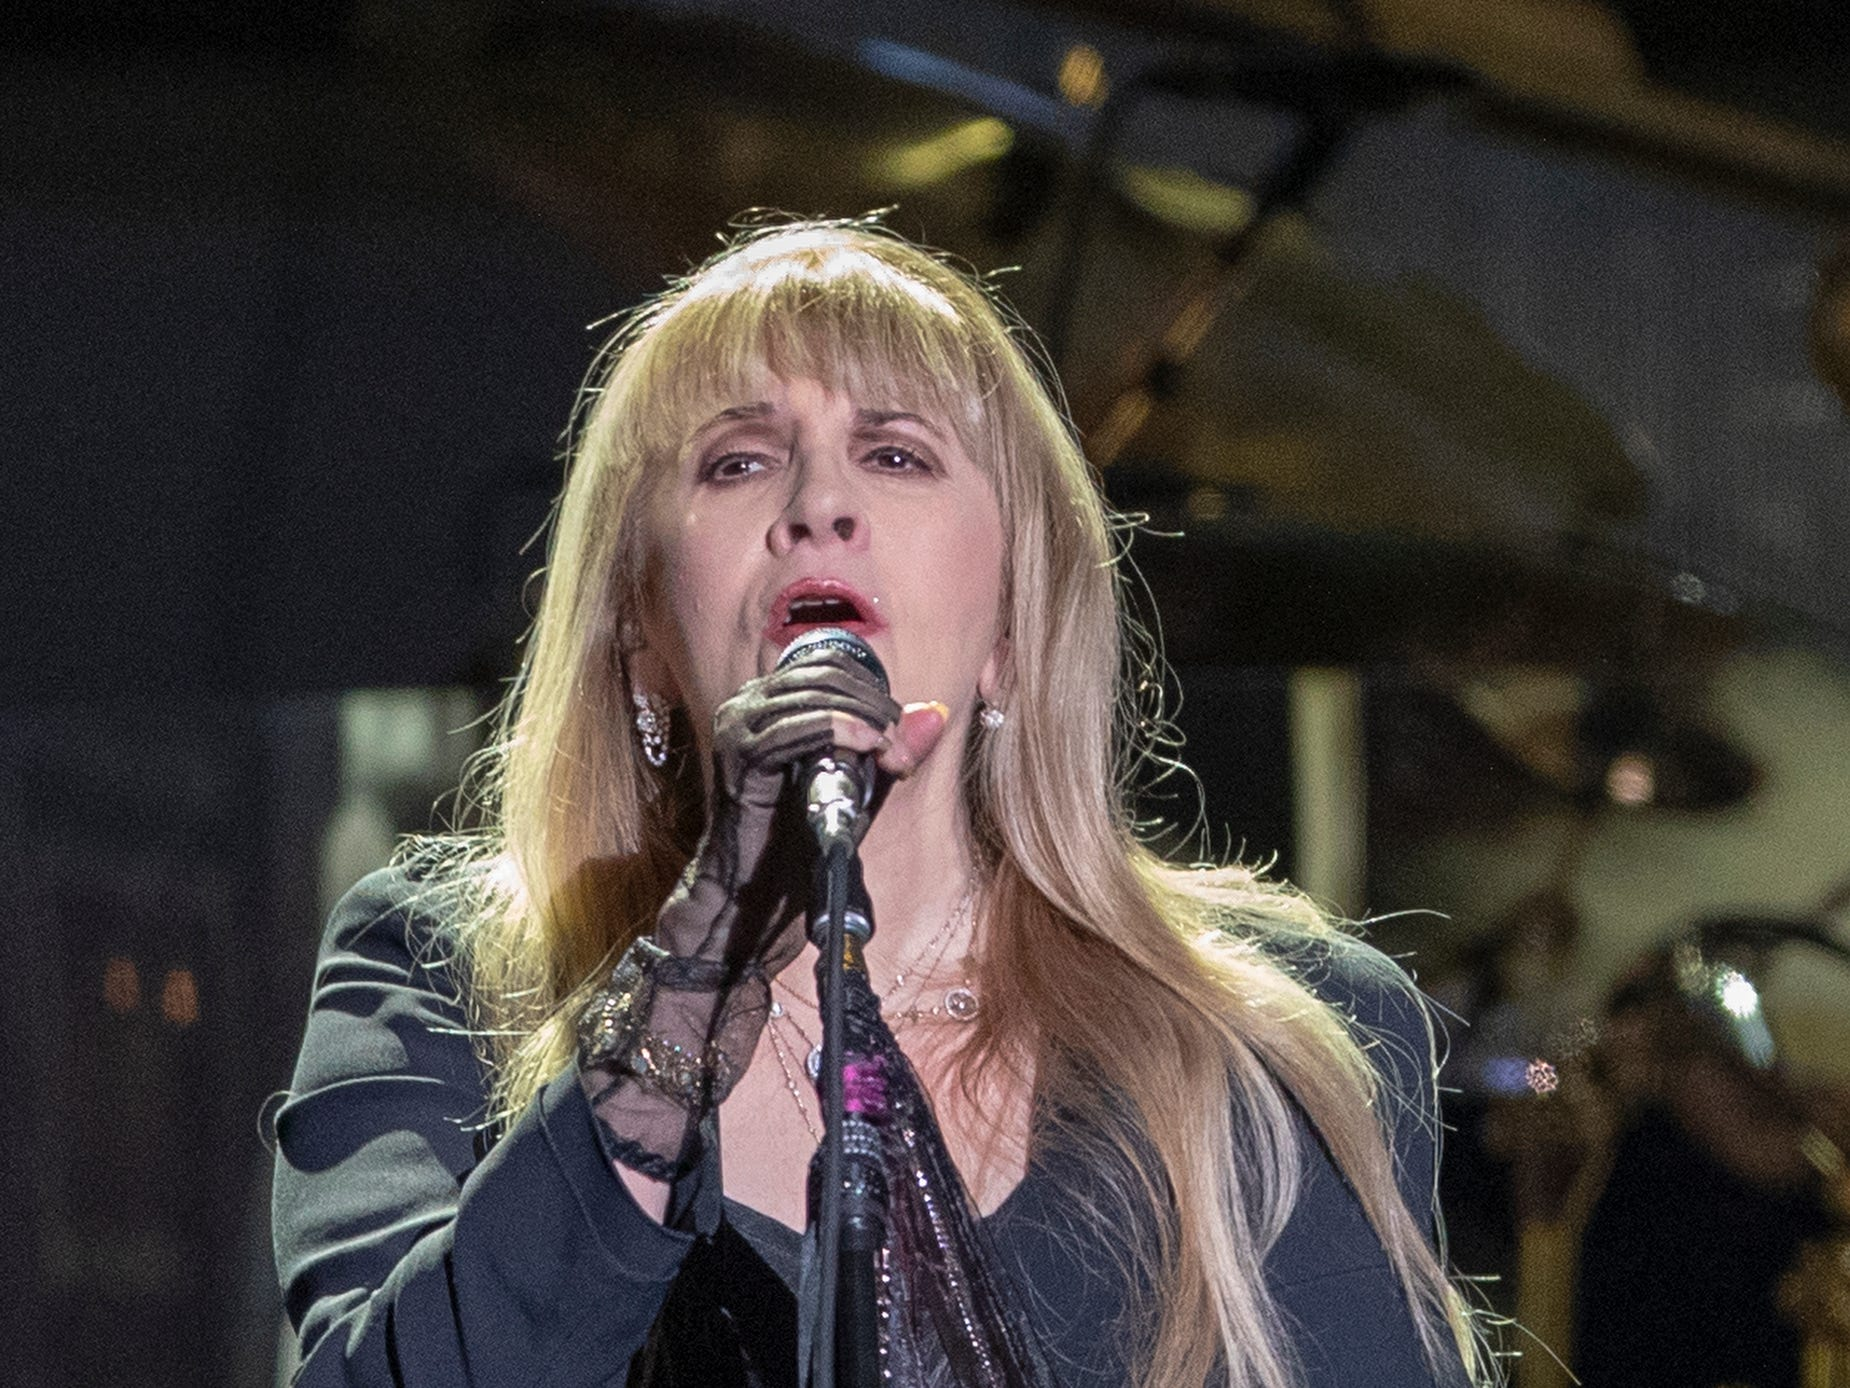 Stevie Nicks, during a performance by Fleetwood Mac at Bankers Life Fieldhouse, Indianapolis, Tuesday, Oct. 16, 2018. The band is playing on their current North American tour.